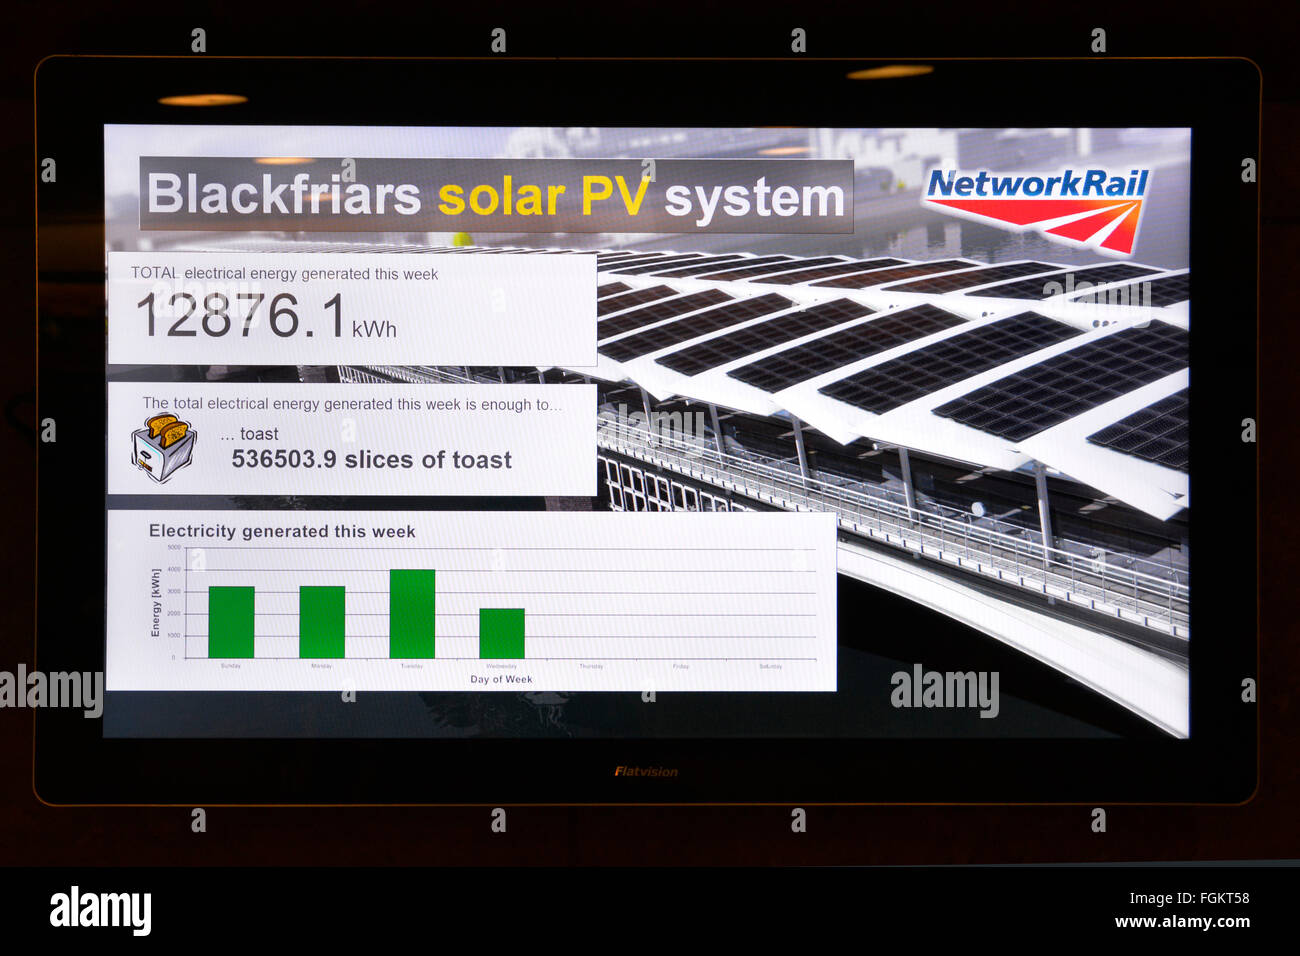 Flat panel TV screen in Blackfriars train station London England UK shows updated energy data for PV solar panels - Stock Image